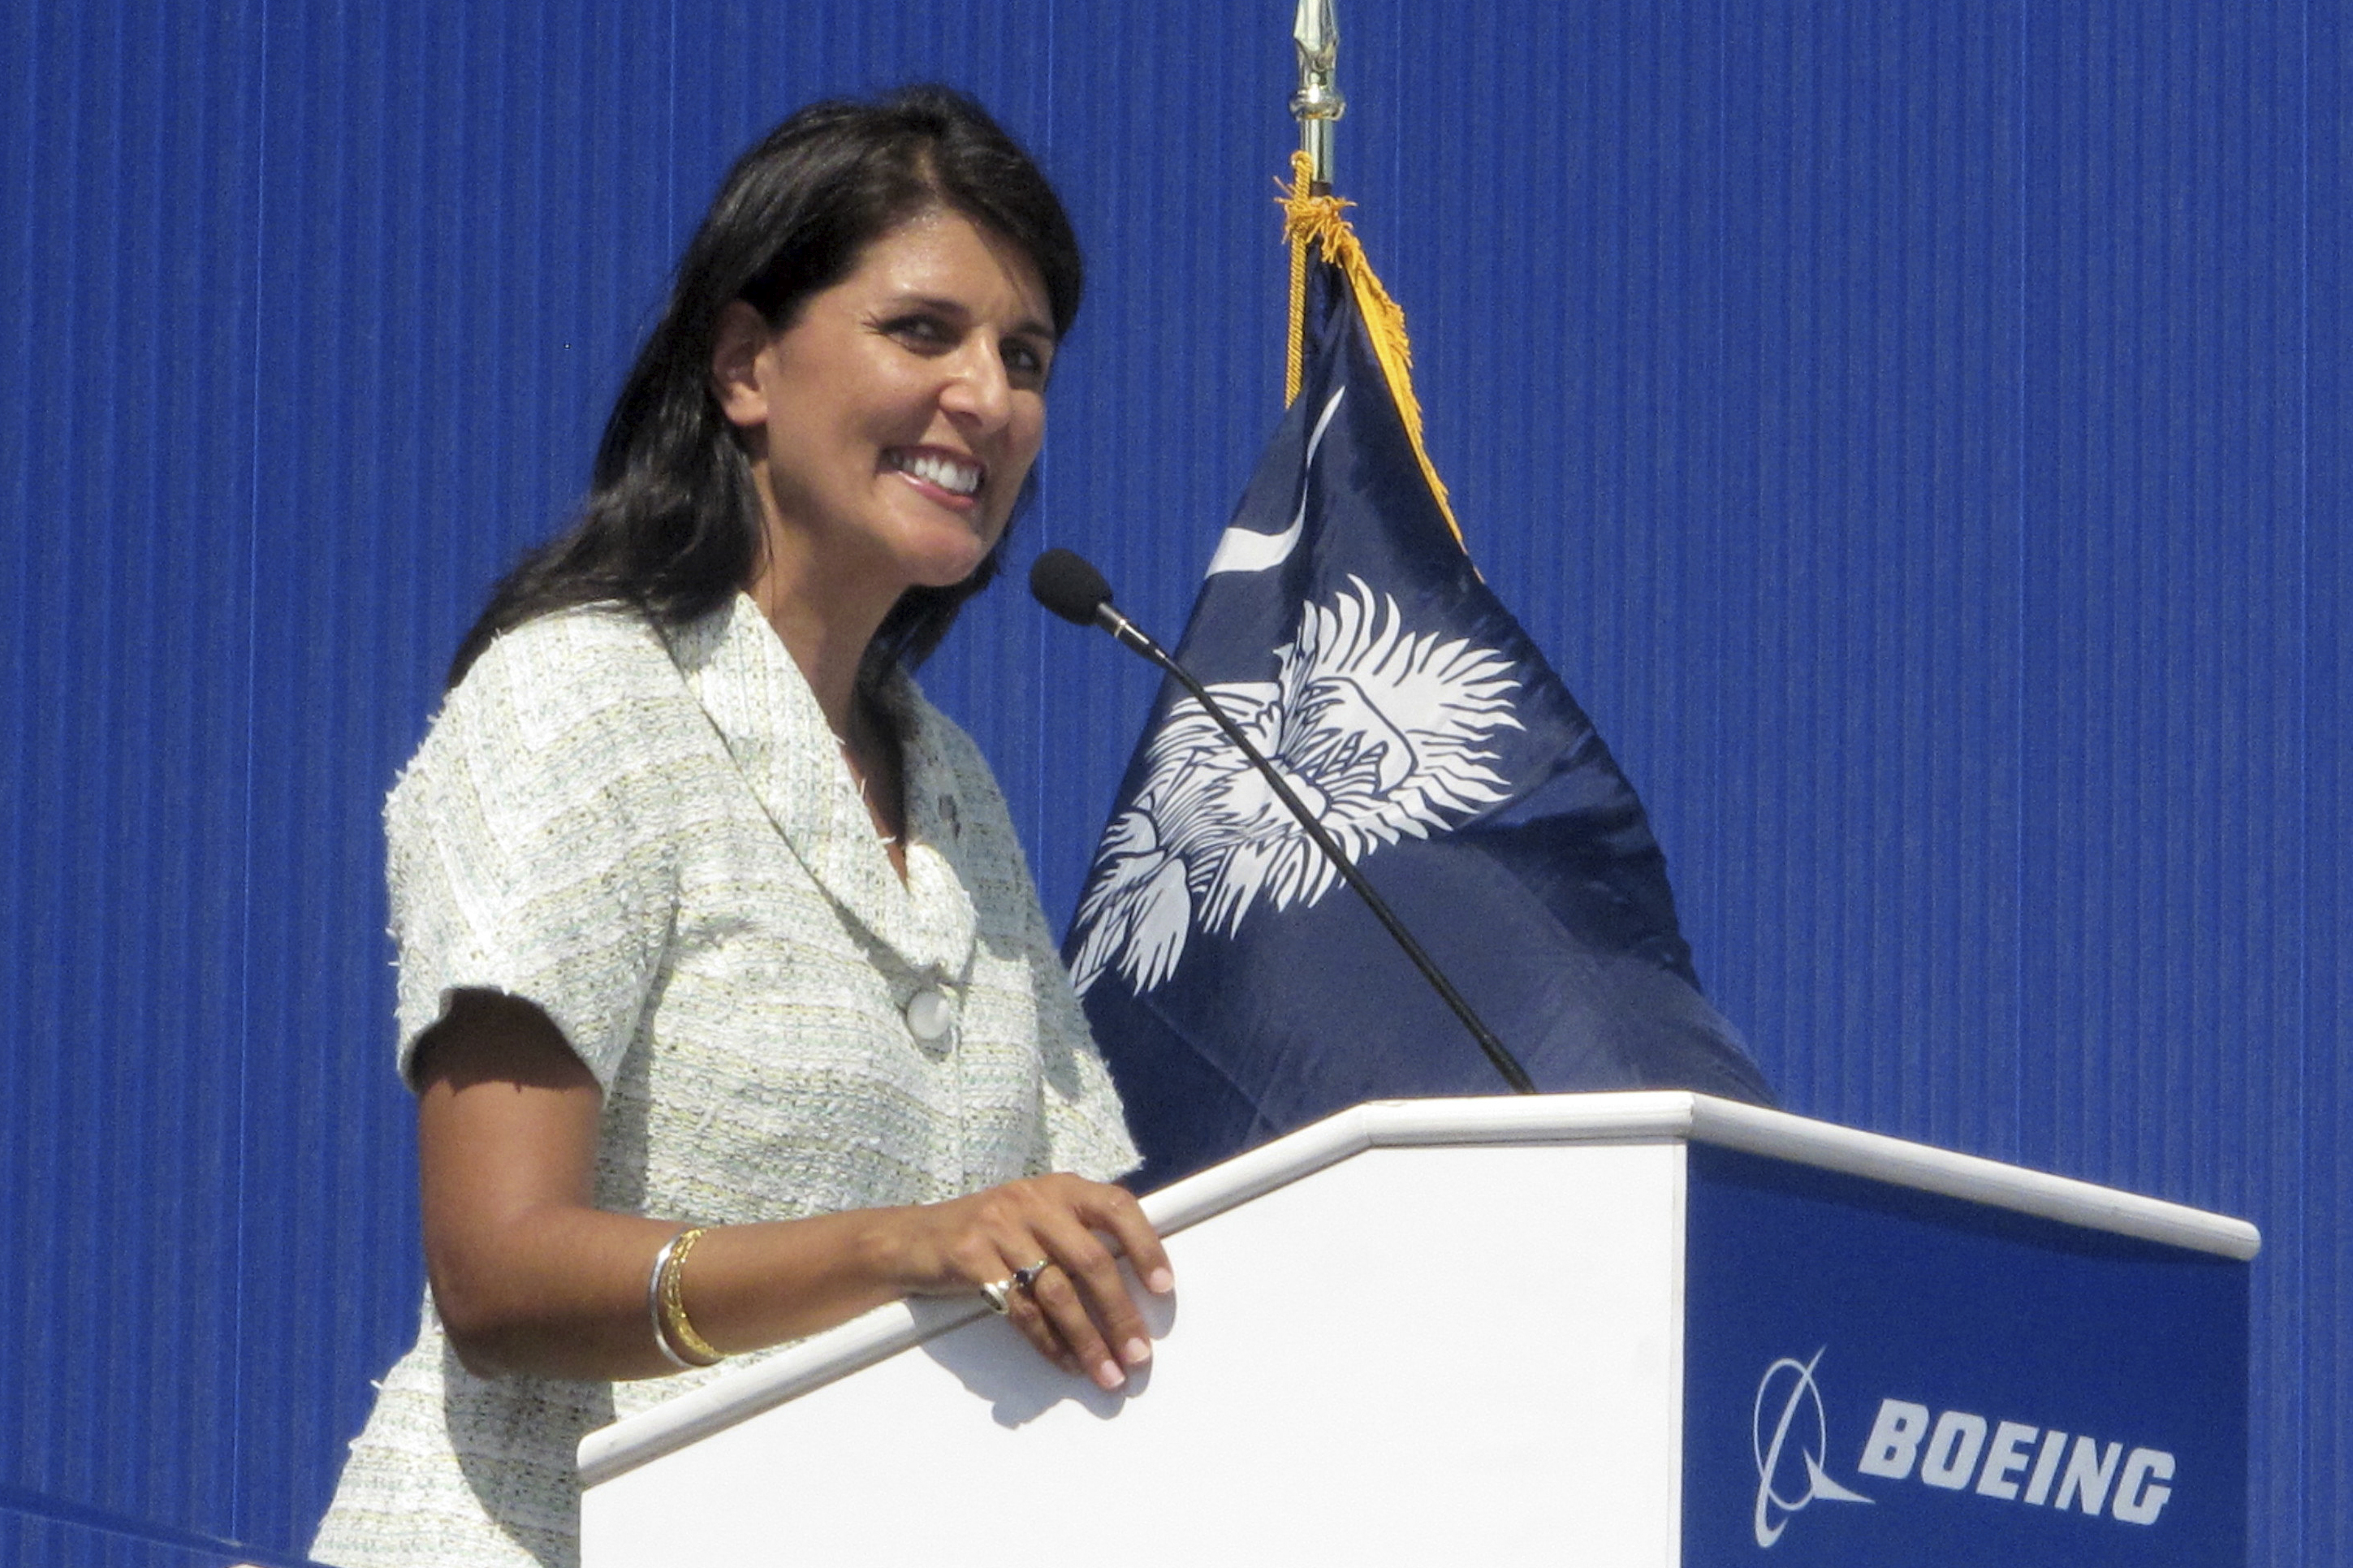 In this June 10, 2011 file photo former South Carolina Gov. Nikki Haley speaks during the dedication of Boeing Co.'s $750 million final assembly plant in North Charleston, S.C.